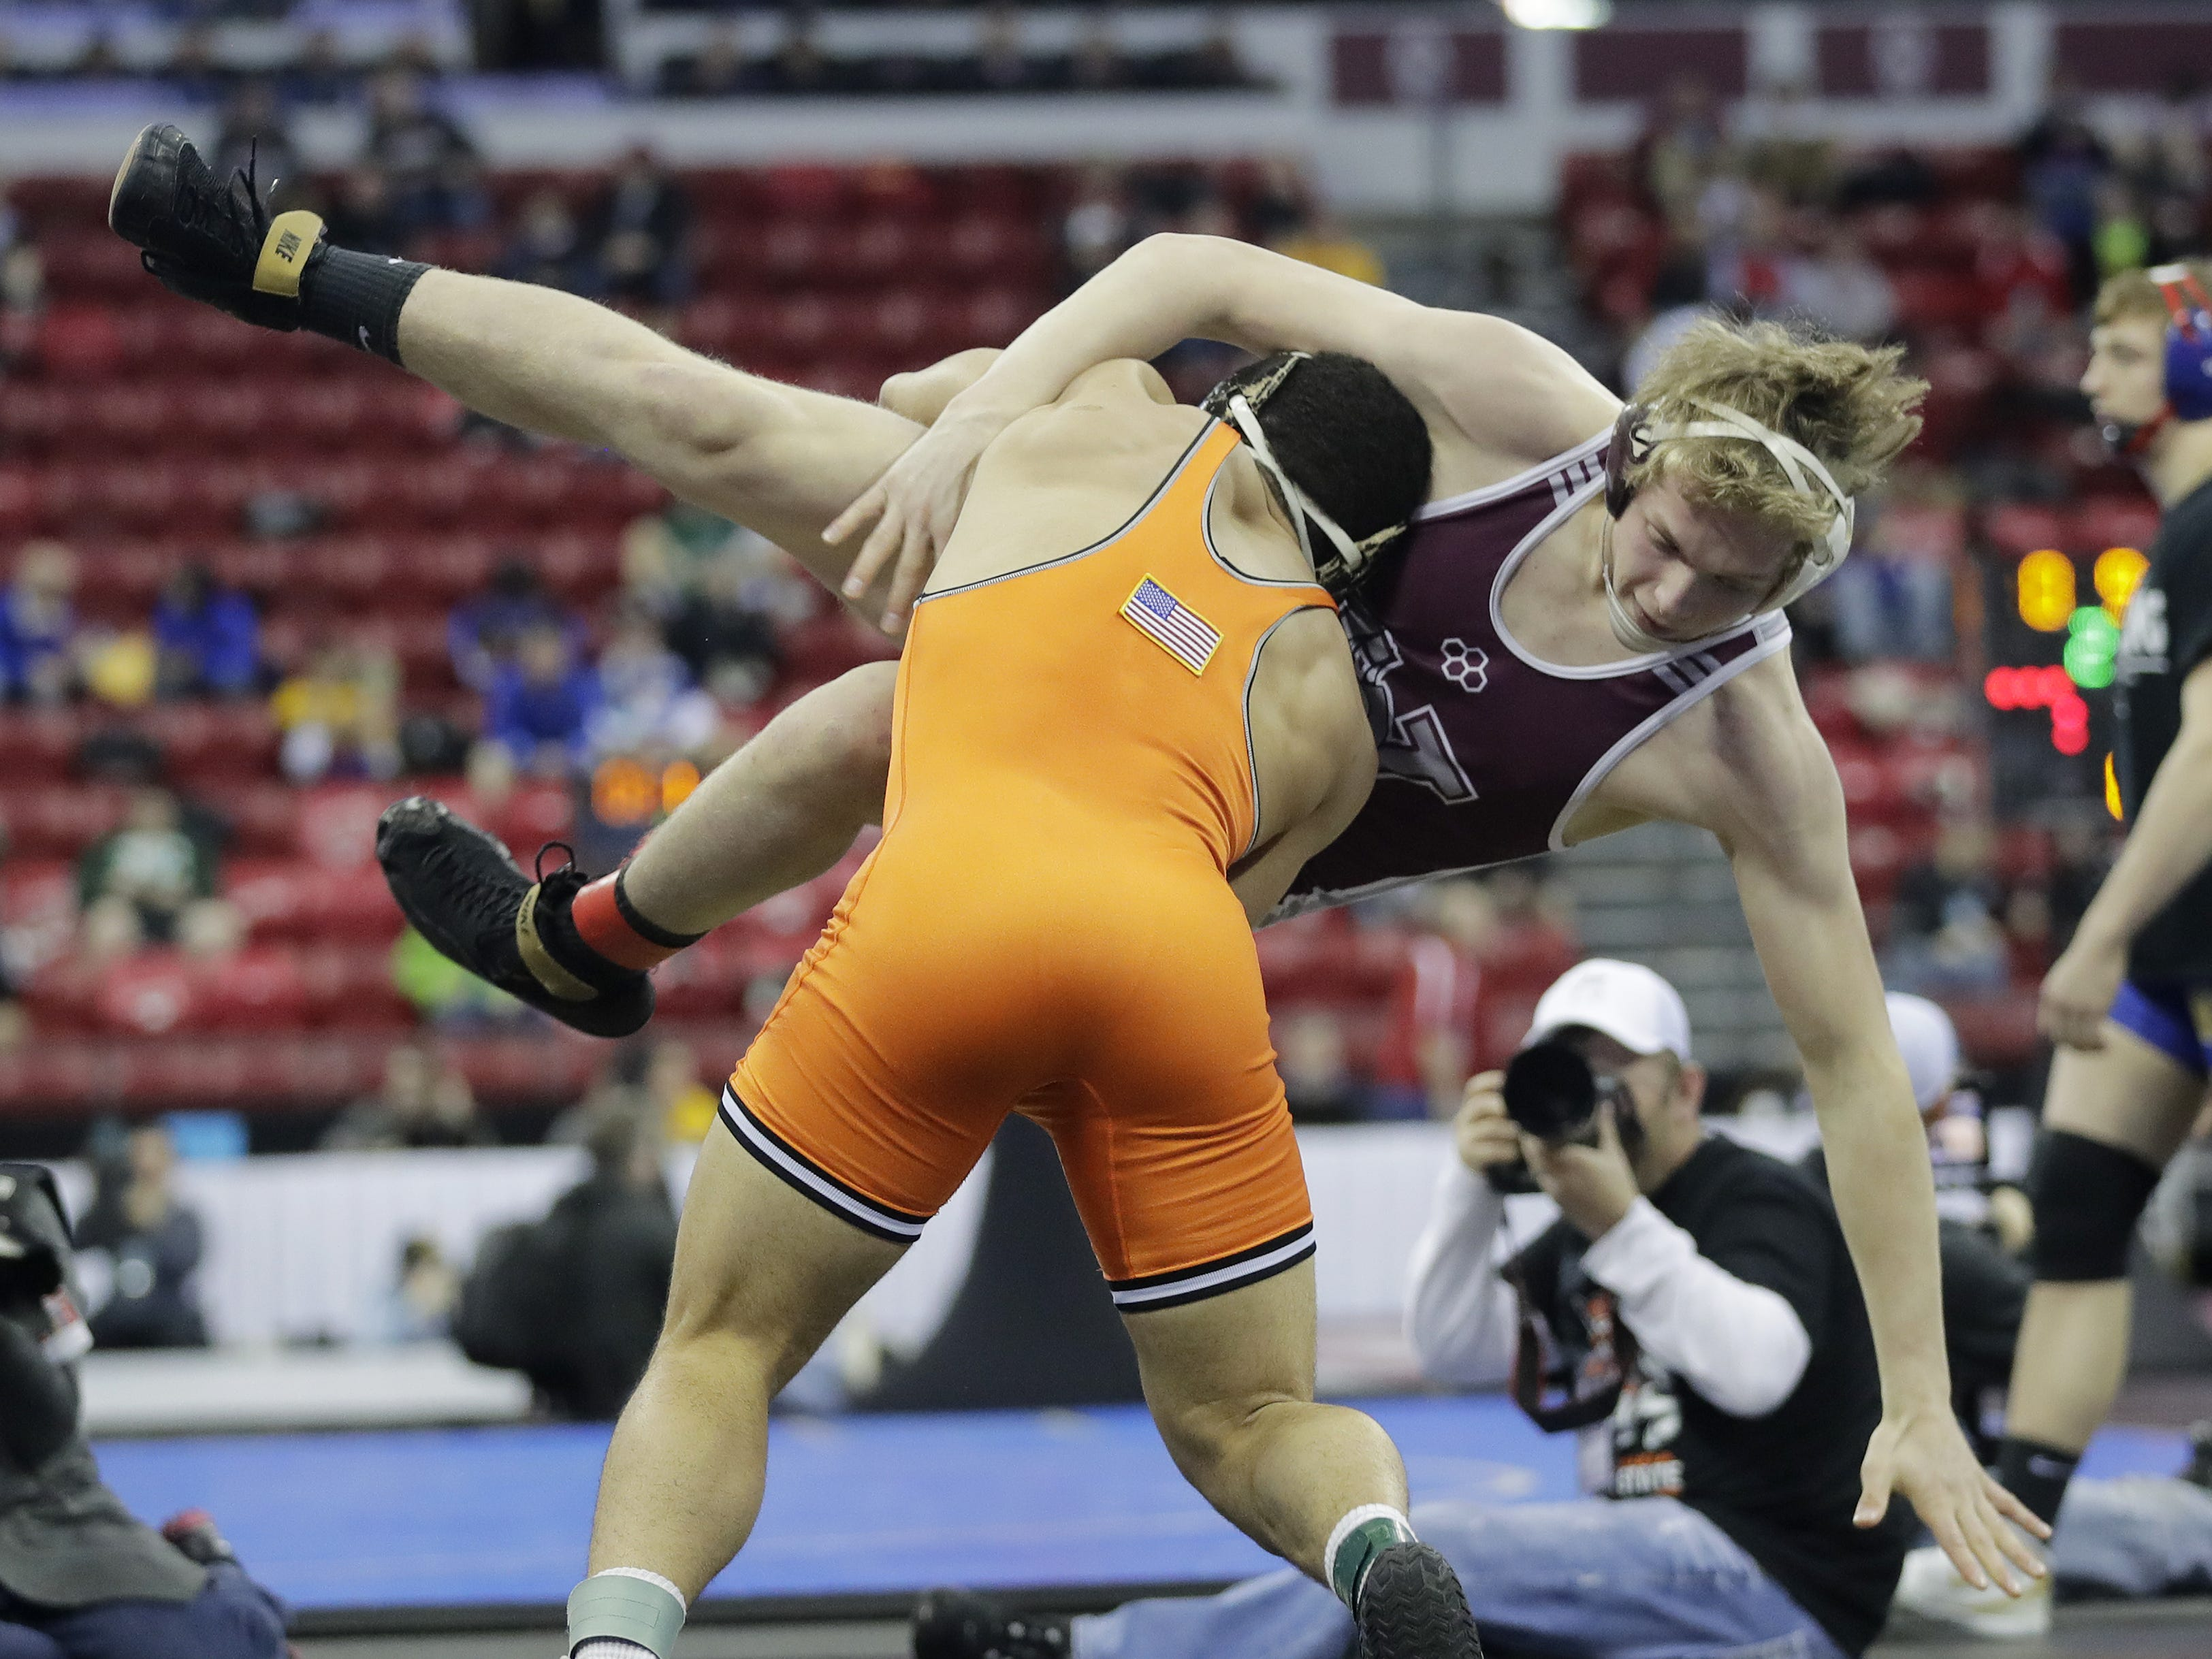 Kaukauna's Bryson Alsteen wrestles Holmen's Drake Schams in a Division 1 182-pound preliminary match at the WIAA state individual wrestling tournament at the Kohl Center on Thursday, February 21, 2019 in Madison, Wis. Adam Wesley/USA TODAY NETWORK-Wisconsin